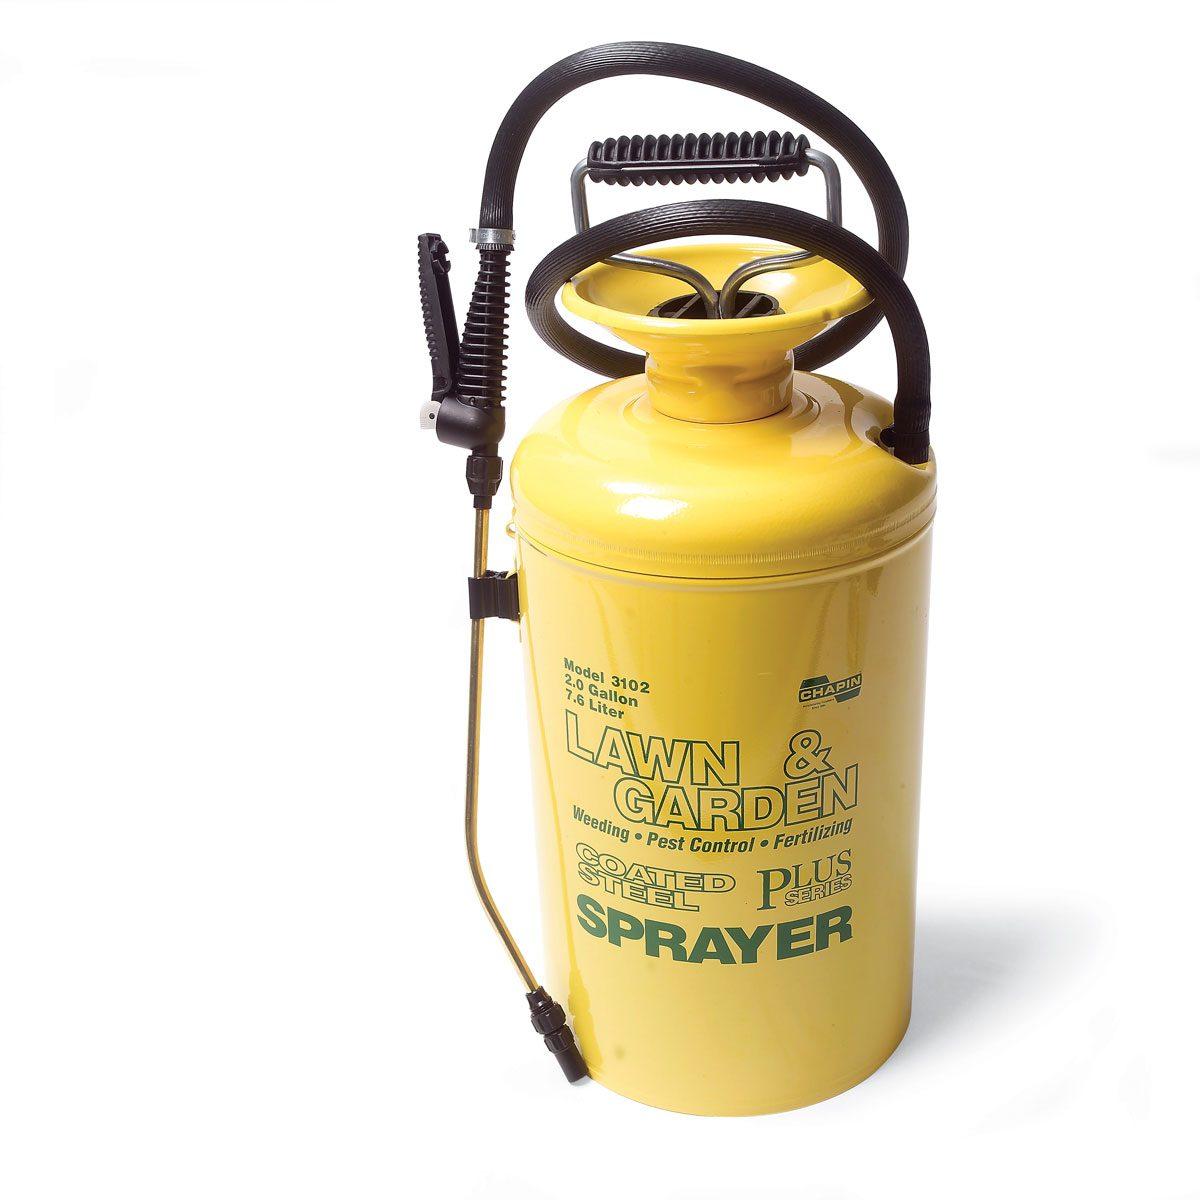 Weed sprayer